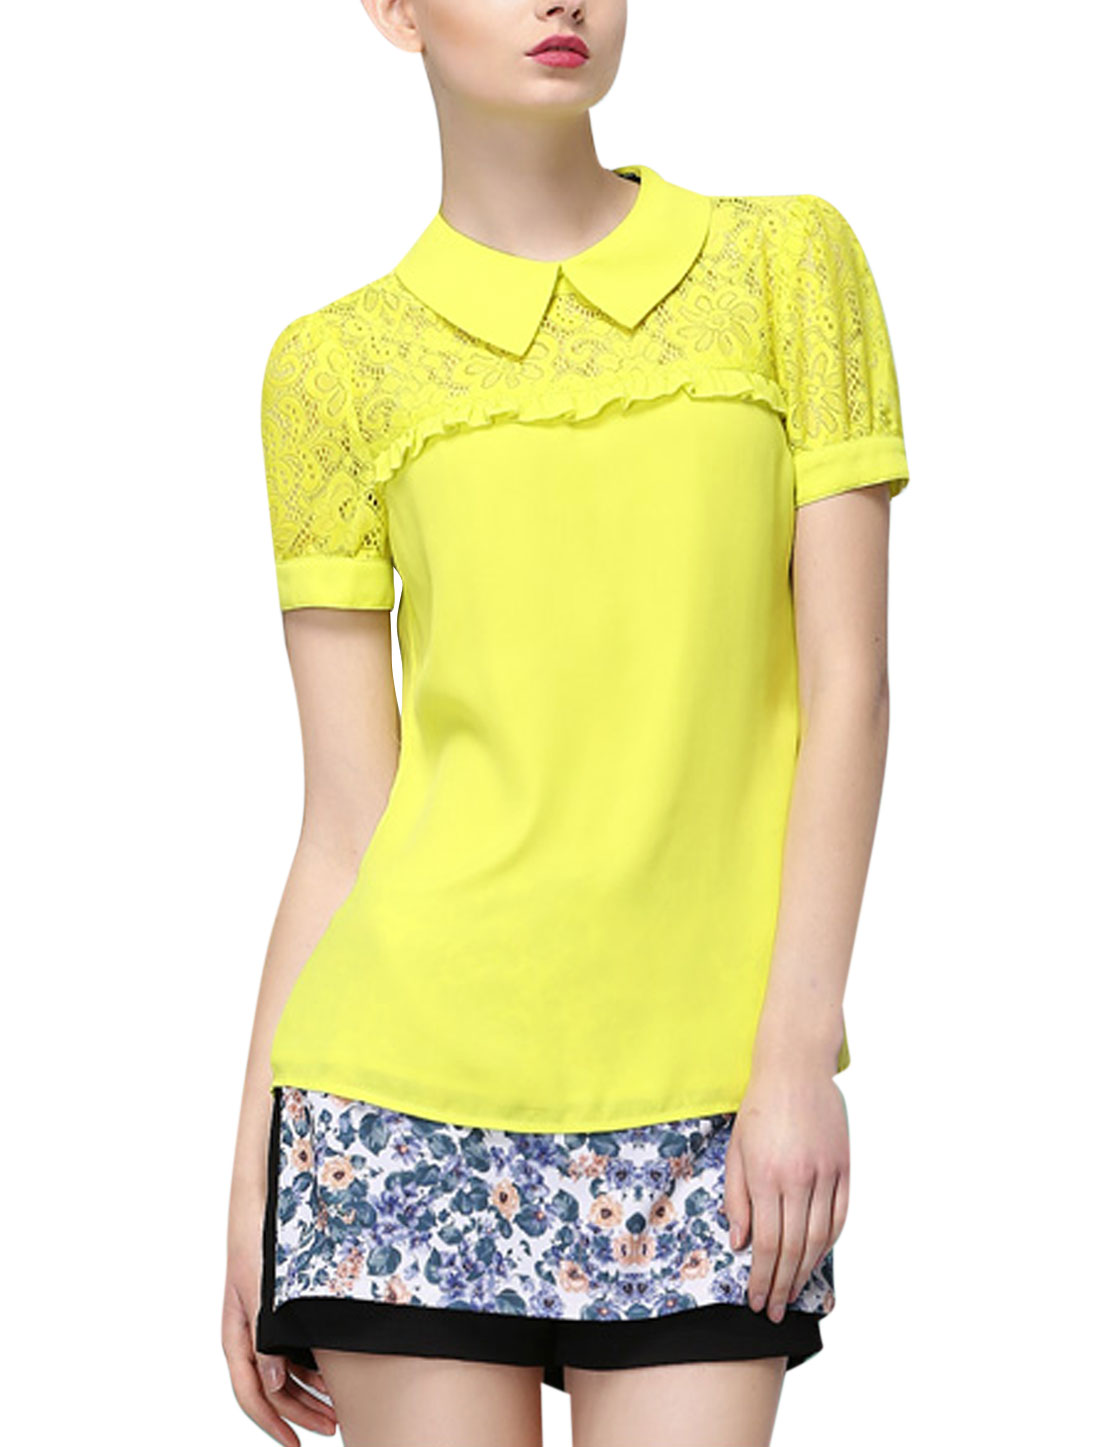 Lady Turndown Collar Crochet Panel Blouse Lime Yellow S